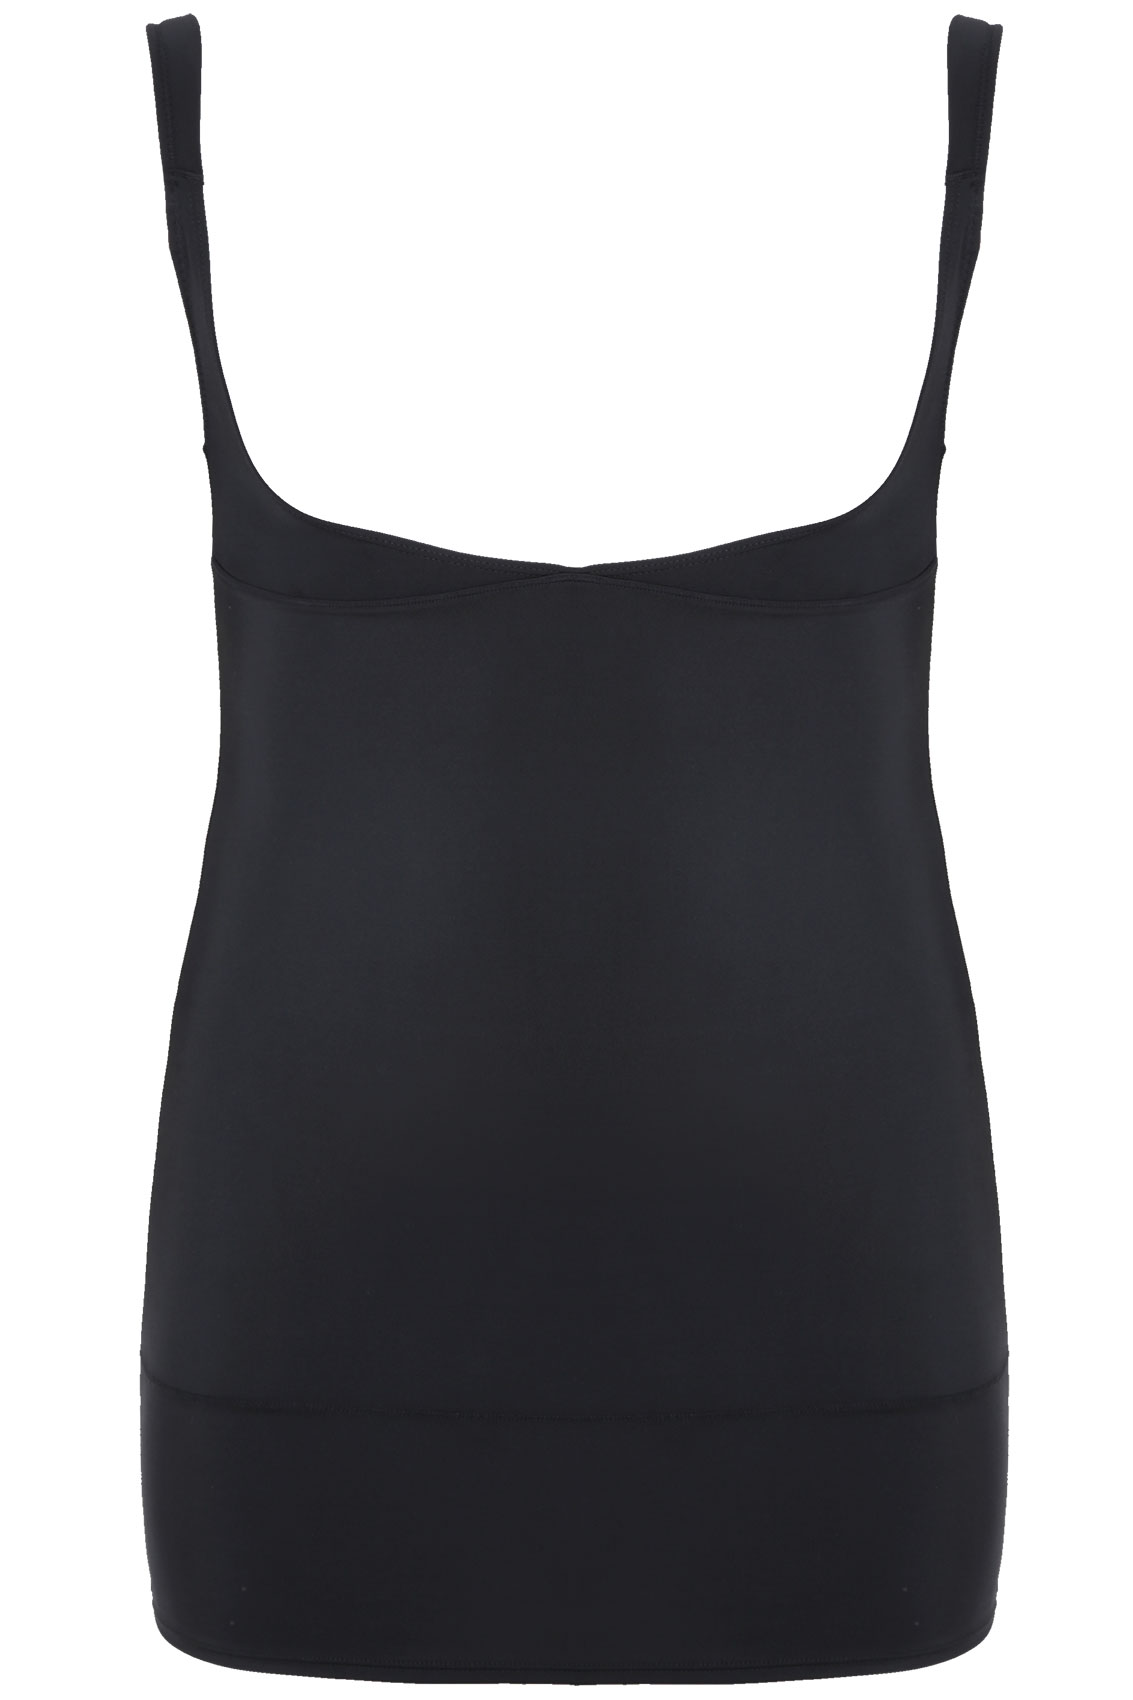 Black Underbra Smoothing Slip Dress With Firm Control Plus -5287